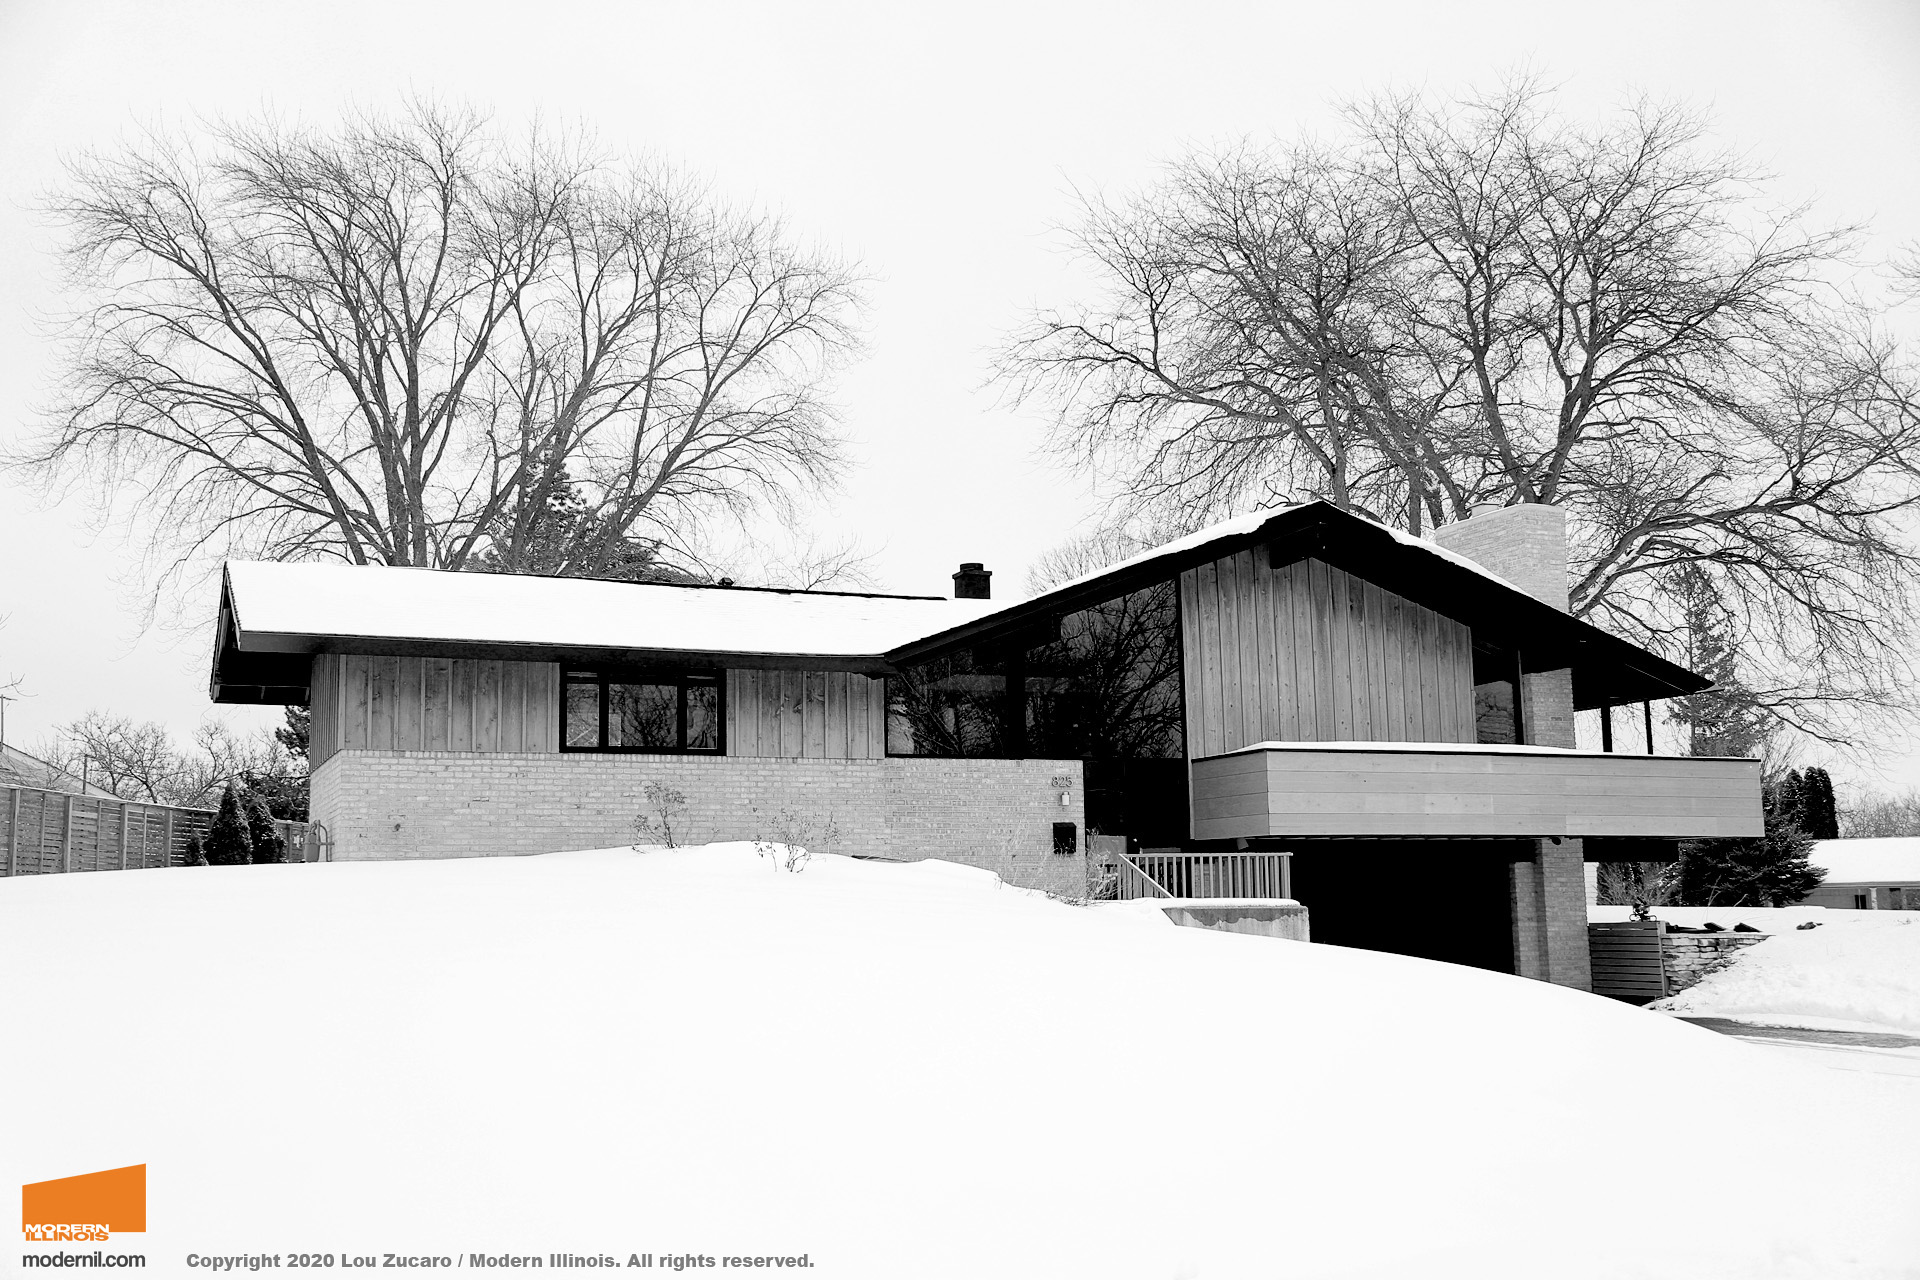 Architect: Edward Dart. @ Copyright 2020 Lou Zucaro / Modern Illinois. All rights reserved. modernil.com